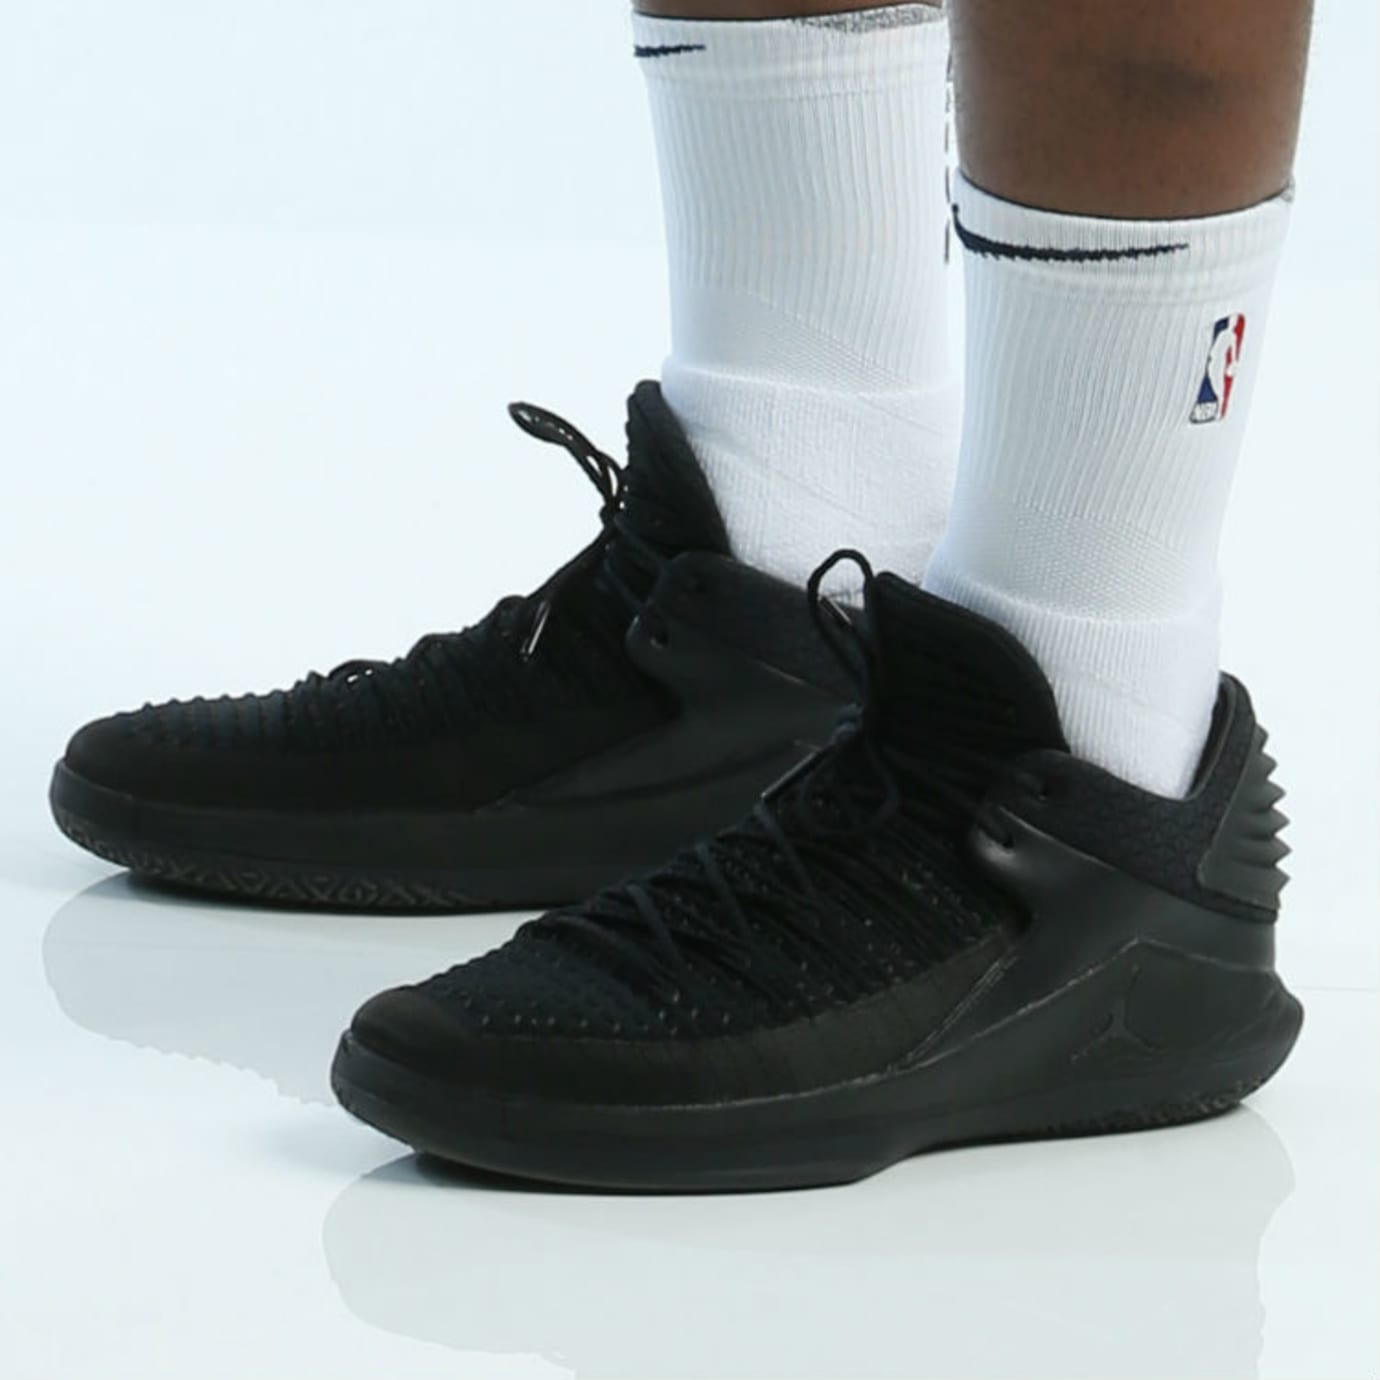 05841cb5478 Jimmy Butler Air Jordan 32 Low Triple Black | Sole Collector